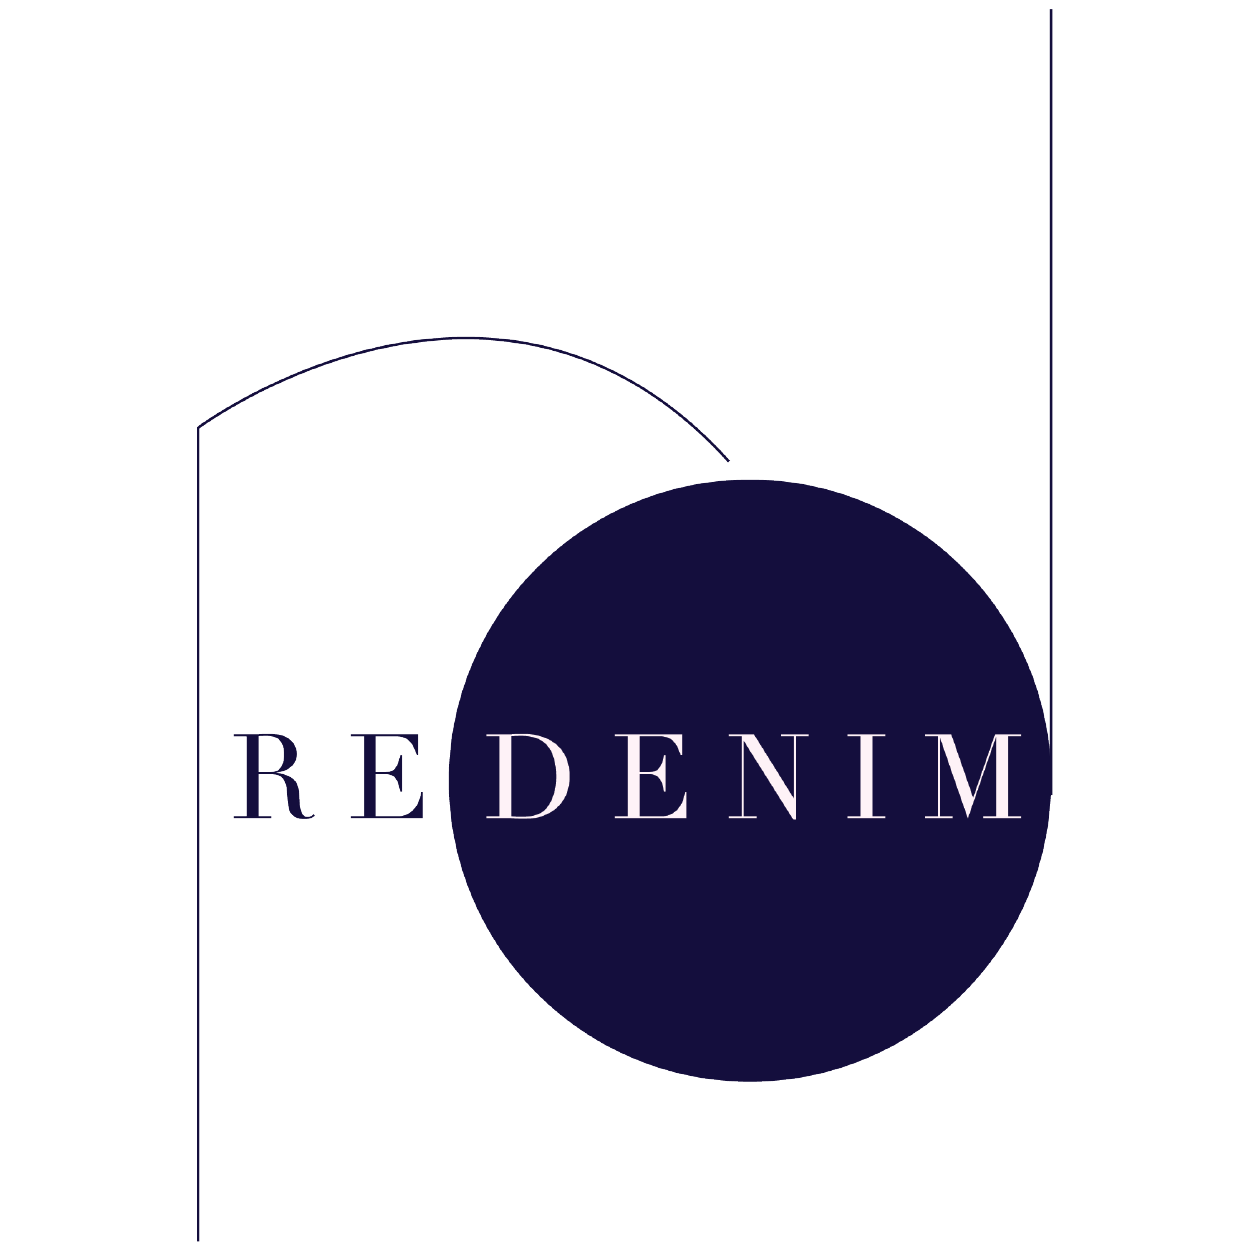 Redenim is a personal styling, AI, and data analytics platform for women that sends jeans to customers' homes, matching their personal style and size, and spares them the time wasted in dressing rooms. Customers decide which pairs they would like to buy and which to send back.